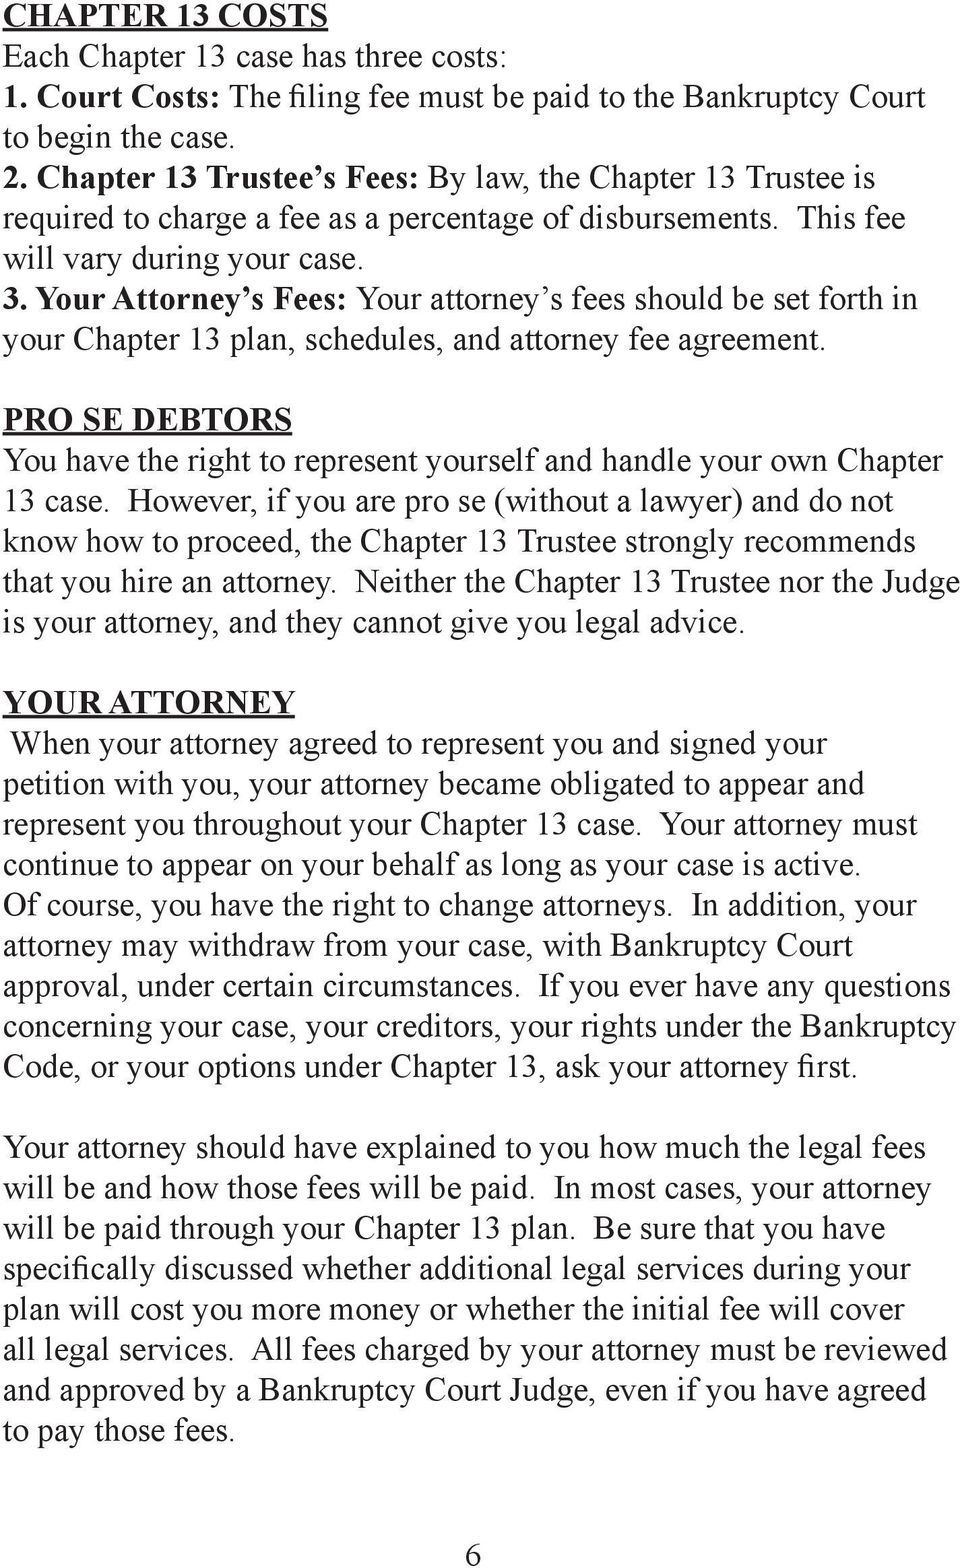 Your Attorney s Fees: Your attorney s fees should be set forth in your Chapter 13 plan, schedules, and attorney fee agreement.